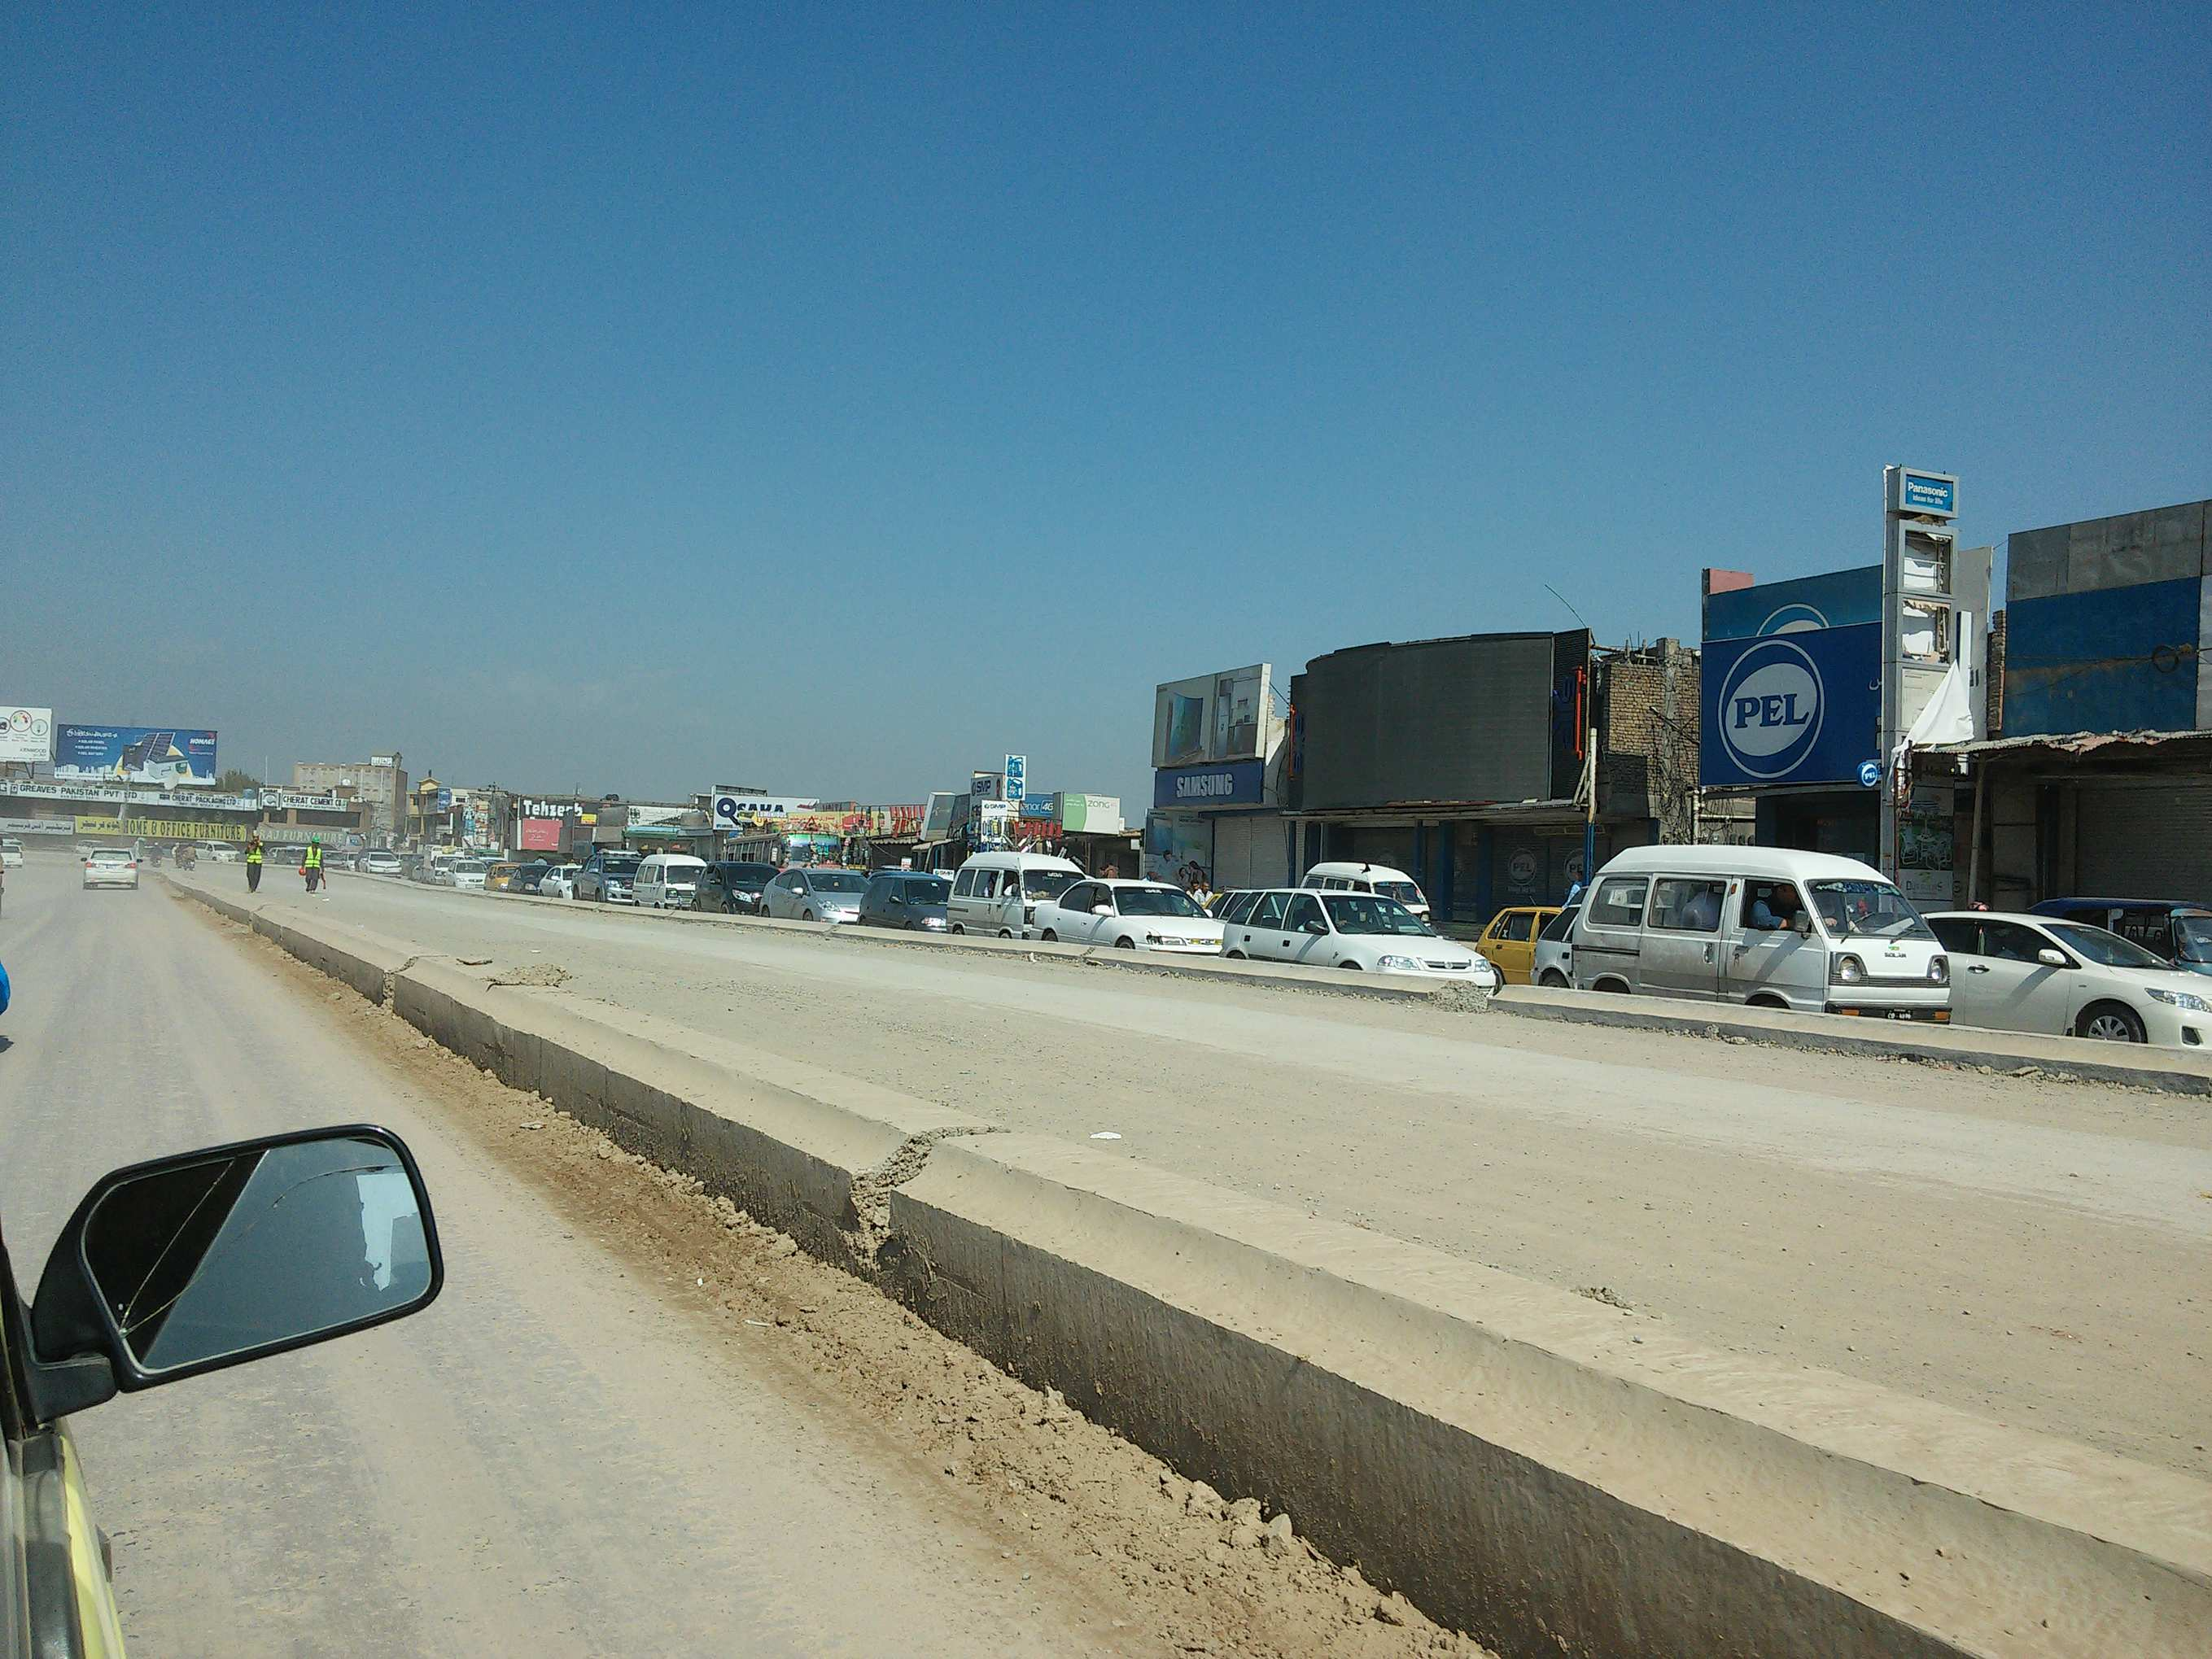 Heavy traffic along the freeway, lots of cars banked up as far as the eye can see. [Photo by: Marx Bär]